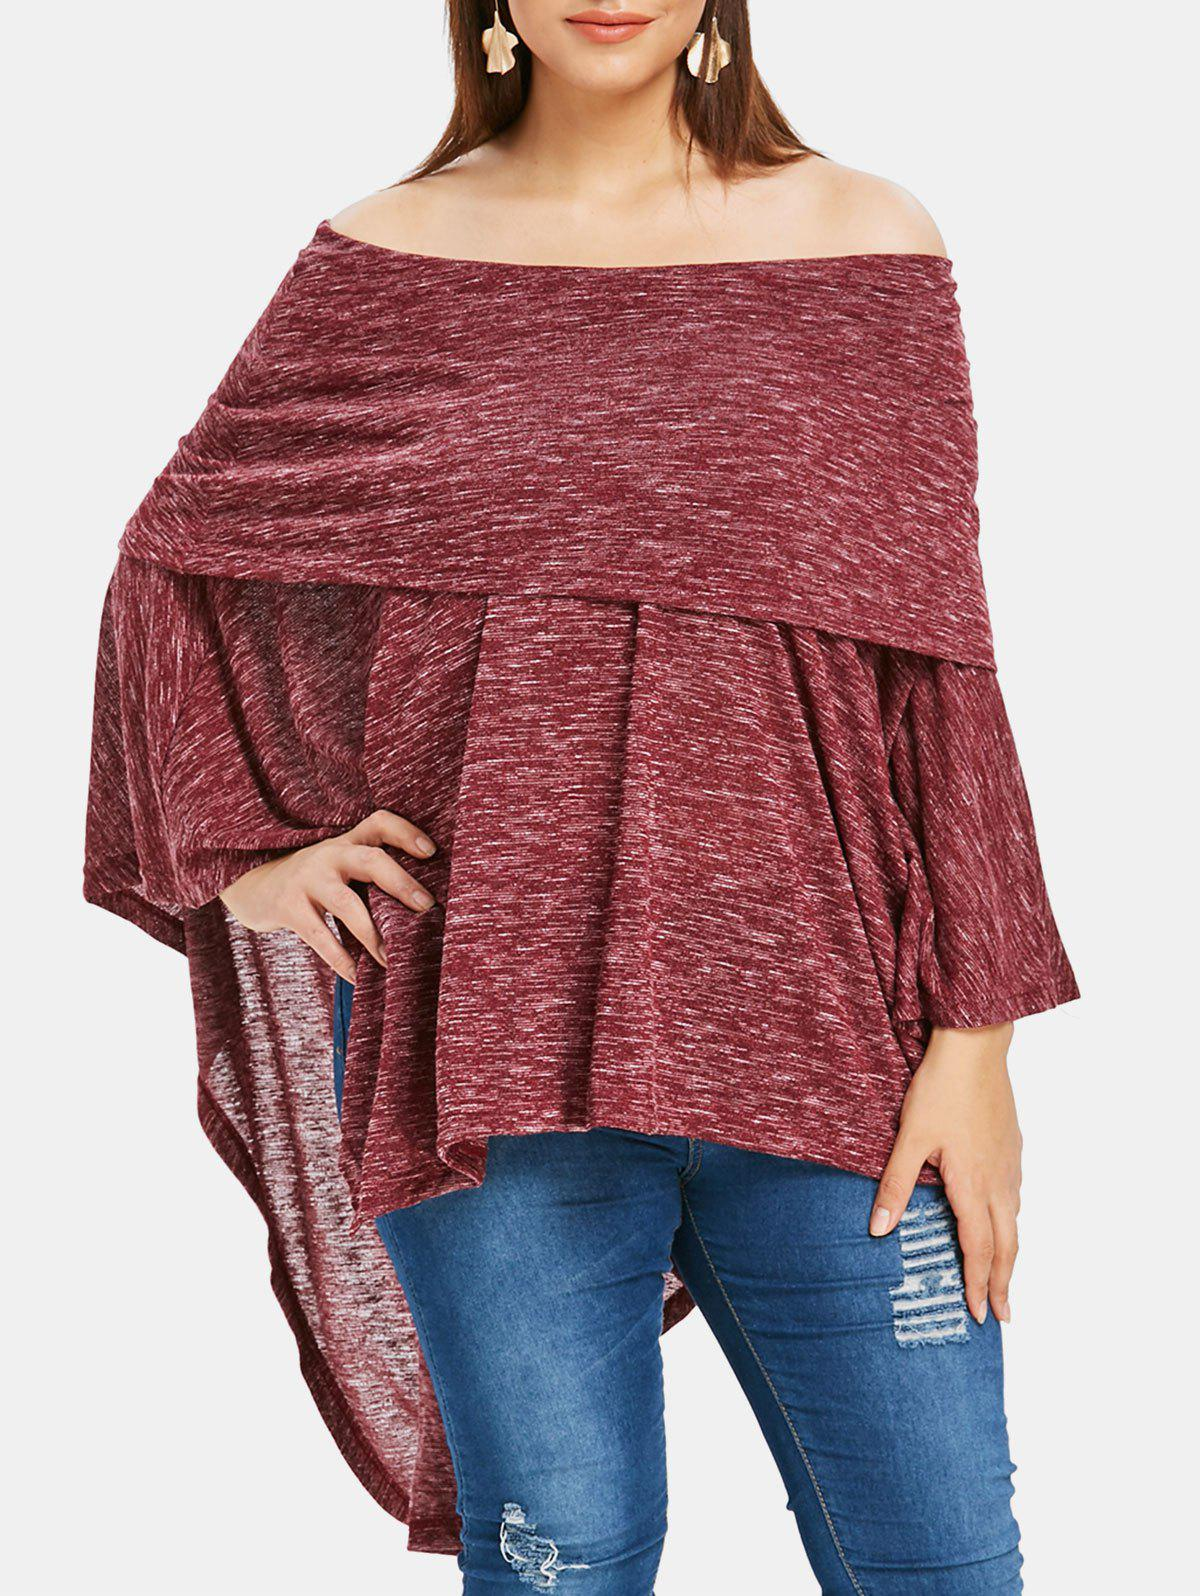 Plus Size Off The Shoulder Foldover Asymmetrical T-shirt - RED WINE 3X